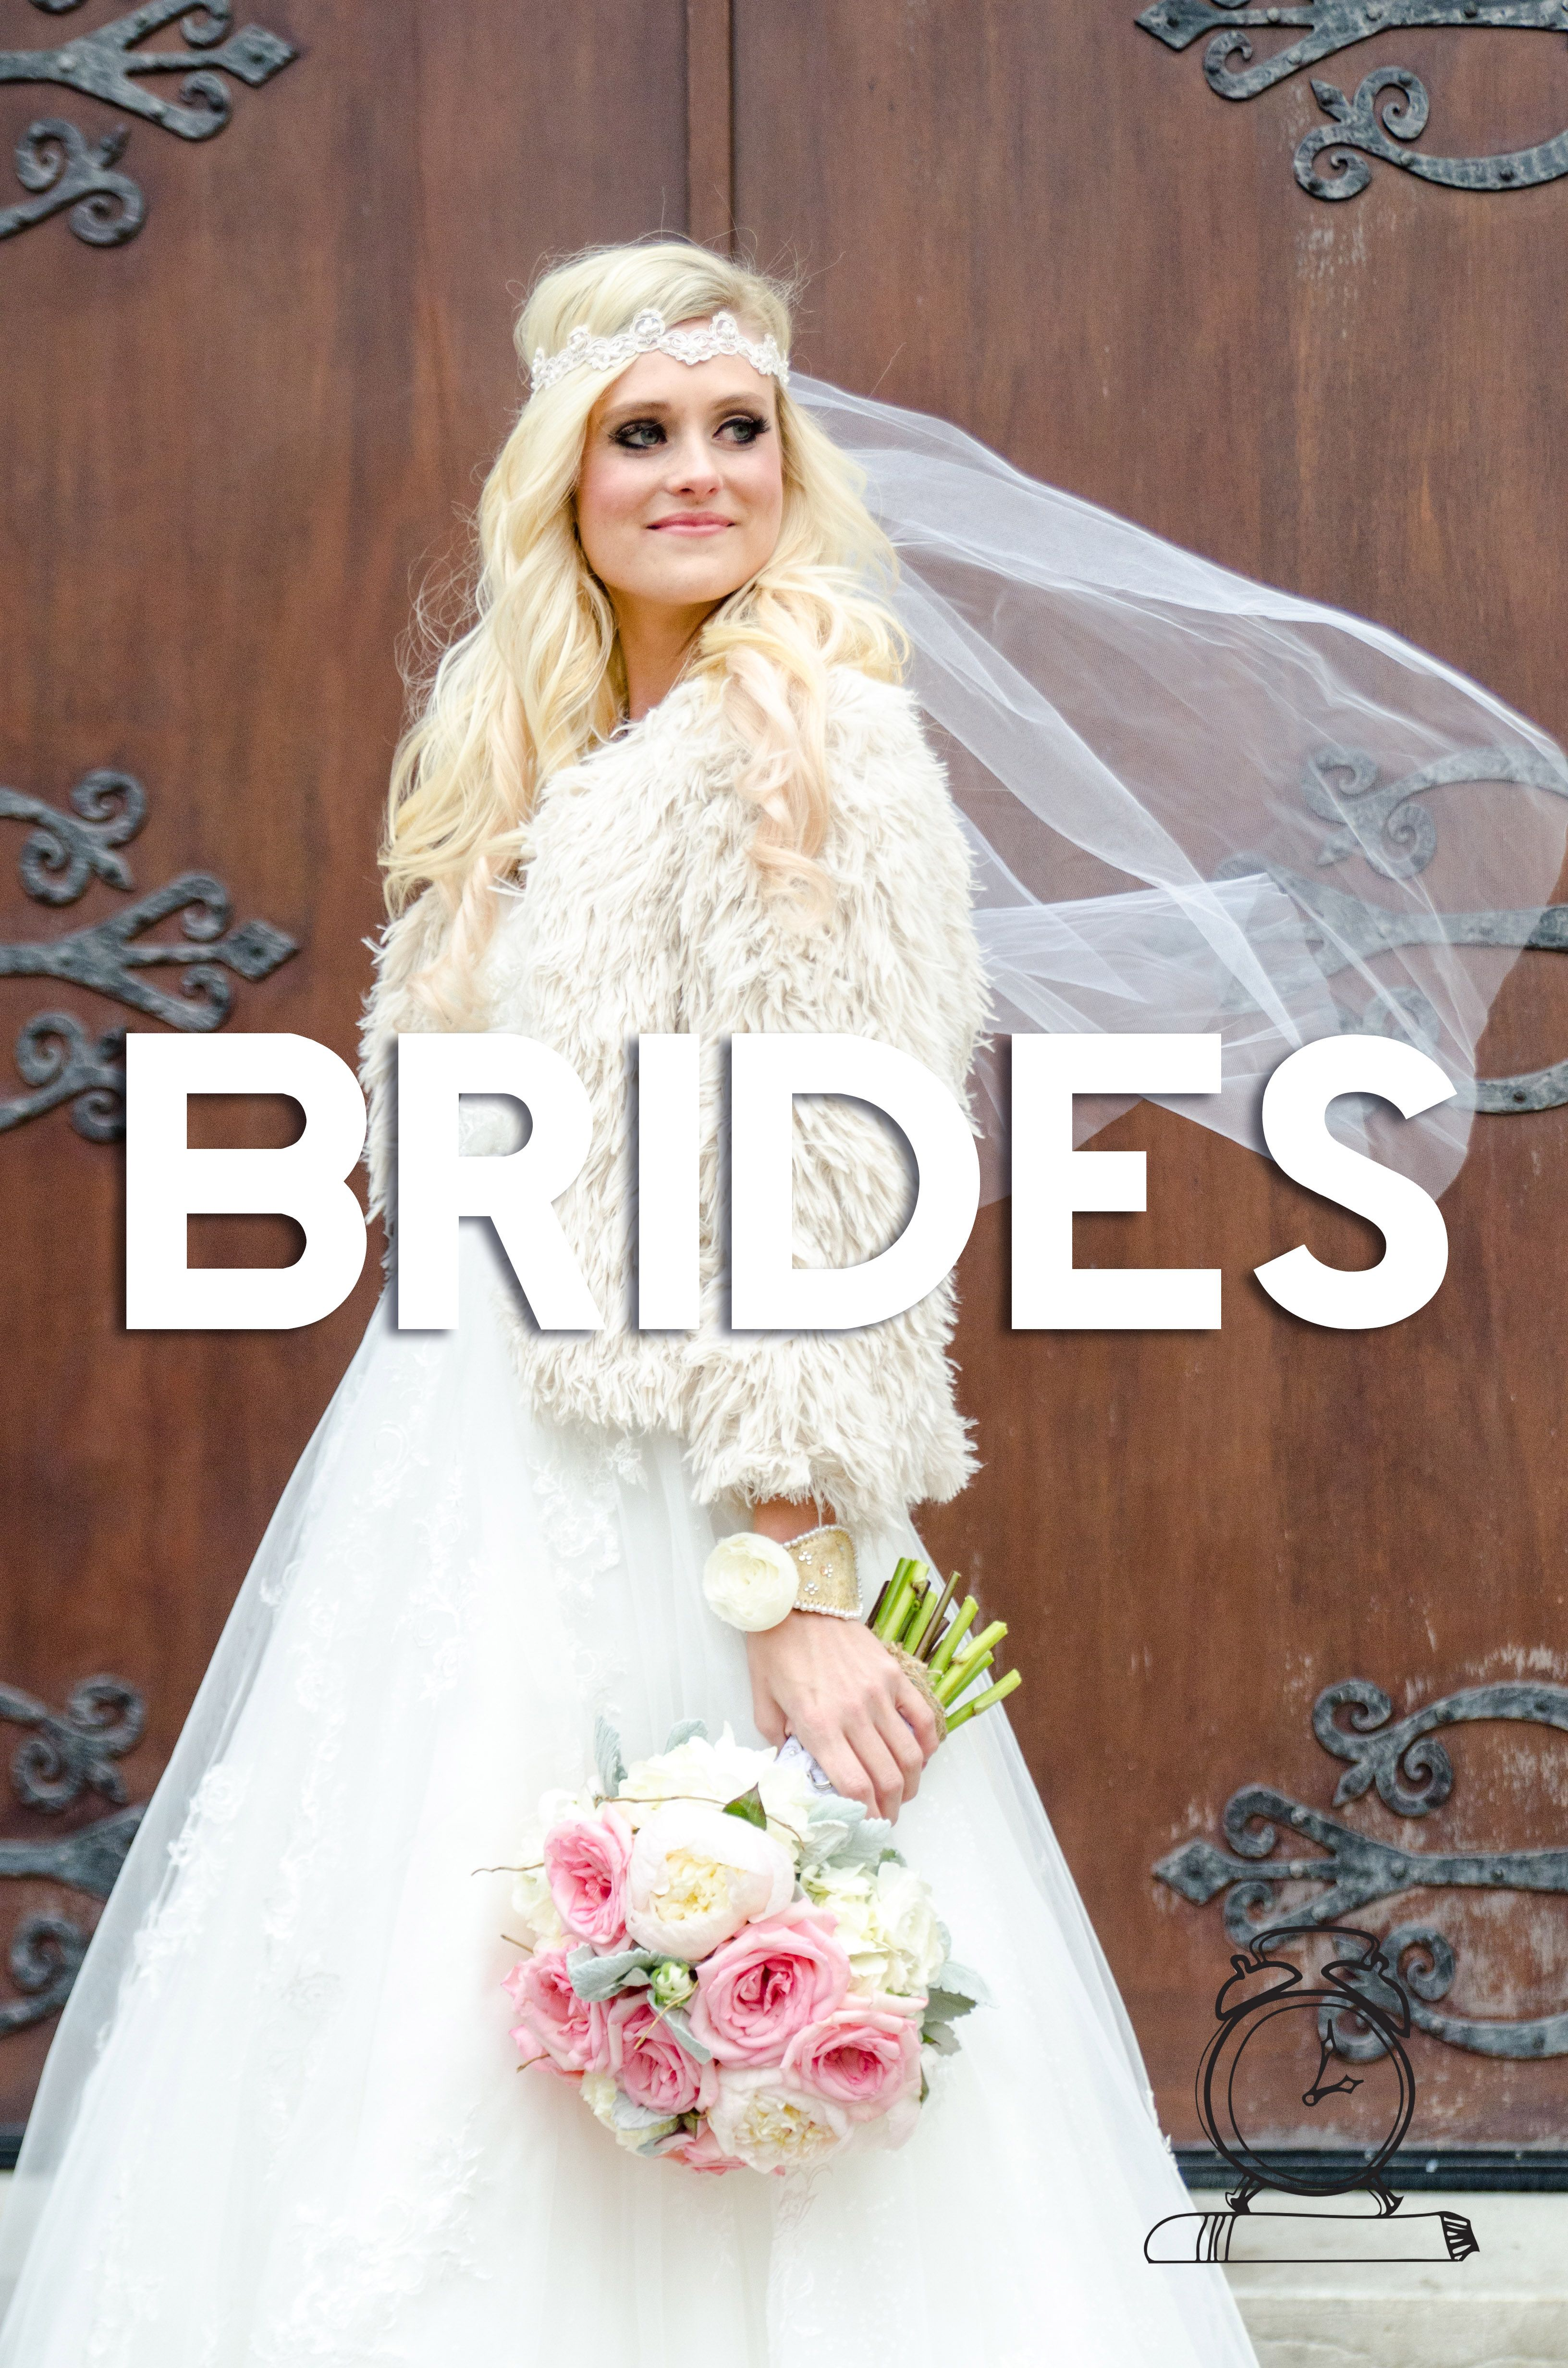 Kristen Keefe at a beautiful cathedral in Joplin, MO bride ...